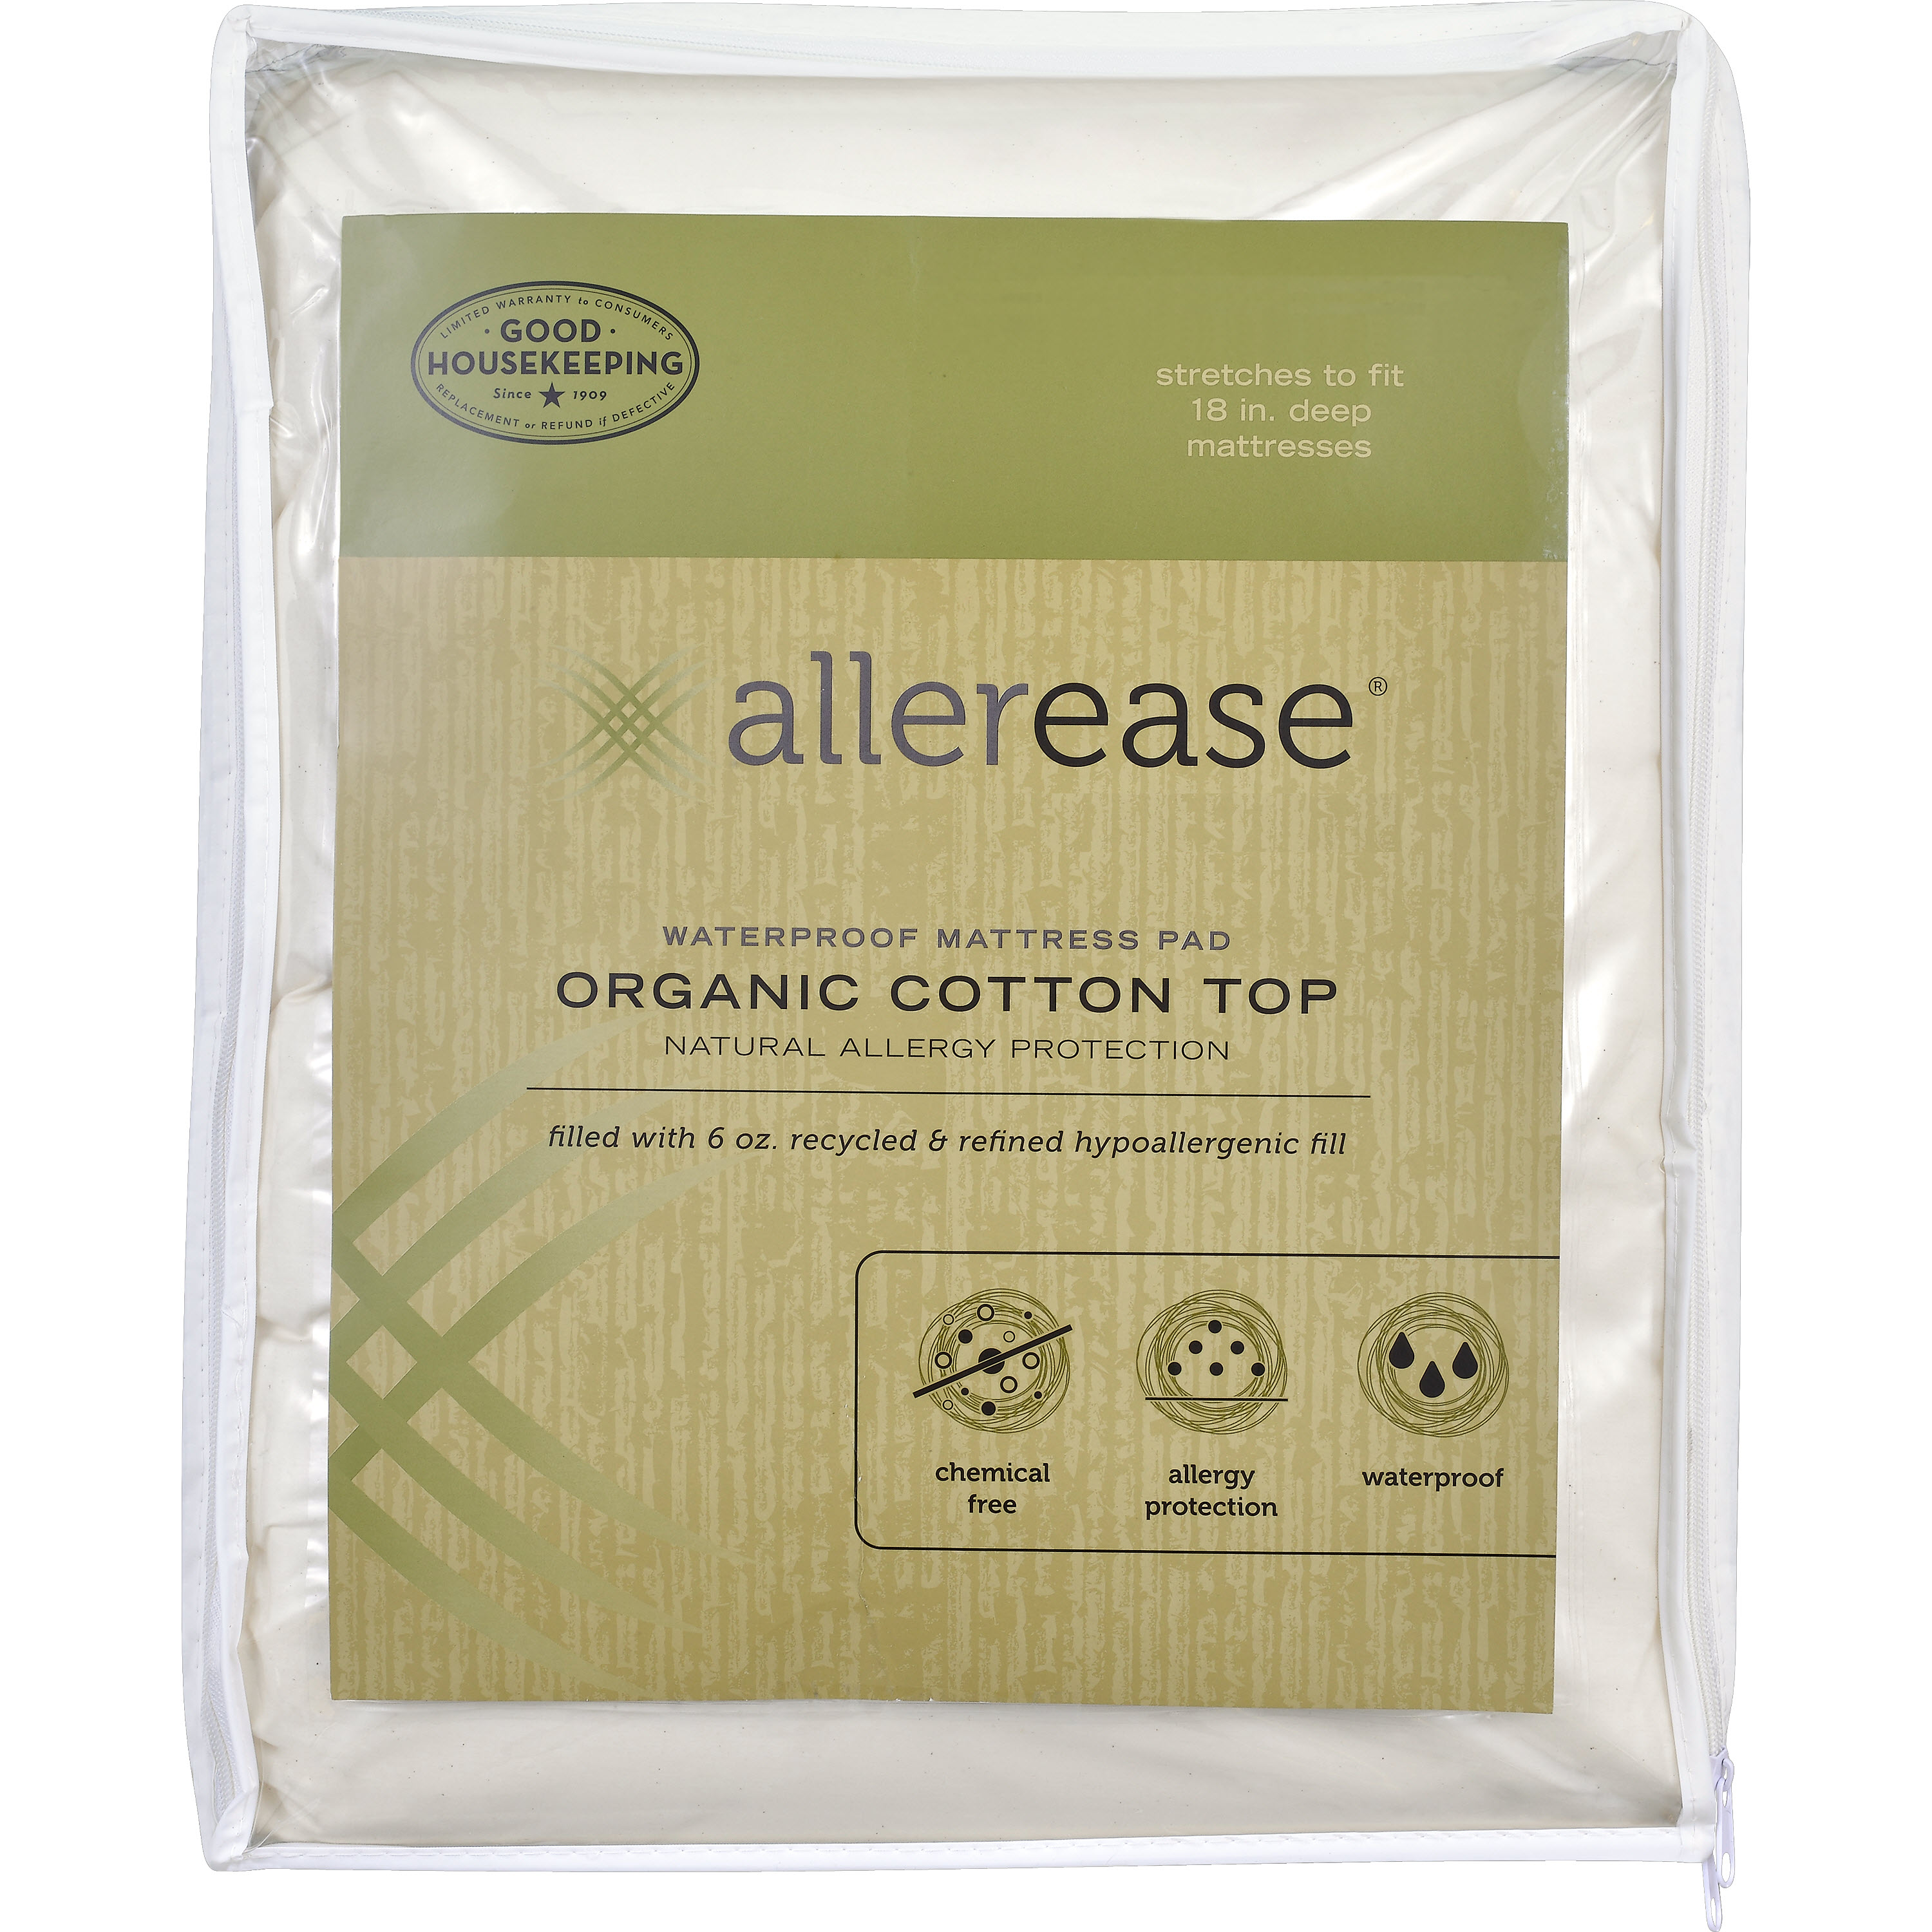 AllerEase Organic Cotton Cover Allergy Protection Waterproof Mattress Pad, Twin